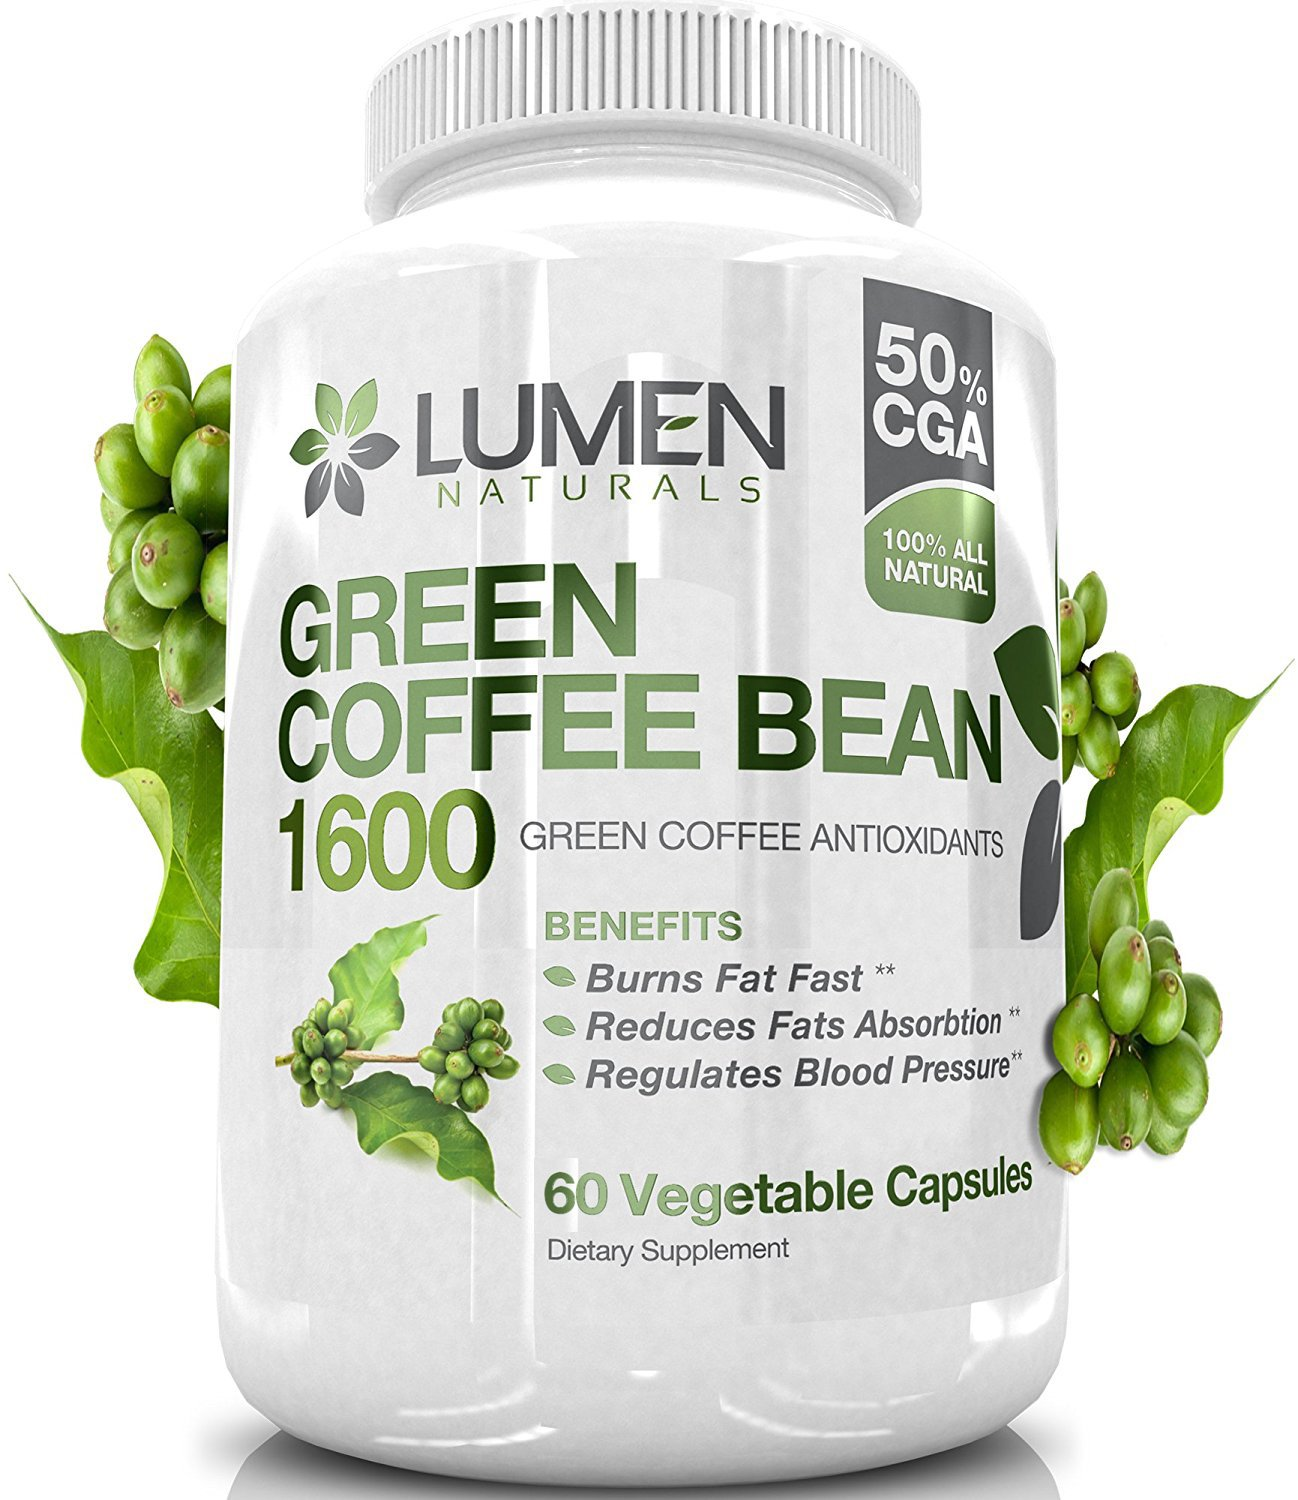 Pure Green Coffee Bean Extract - 800mg Maximum Strength Fat Burner to Accelerate Metabolism & Increase Energy - All Natural GCA (Green Coffee Antioxidant) & Chlorogenic Acid - 60 Count by Lumen Naturals